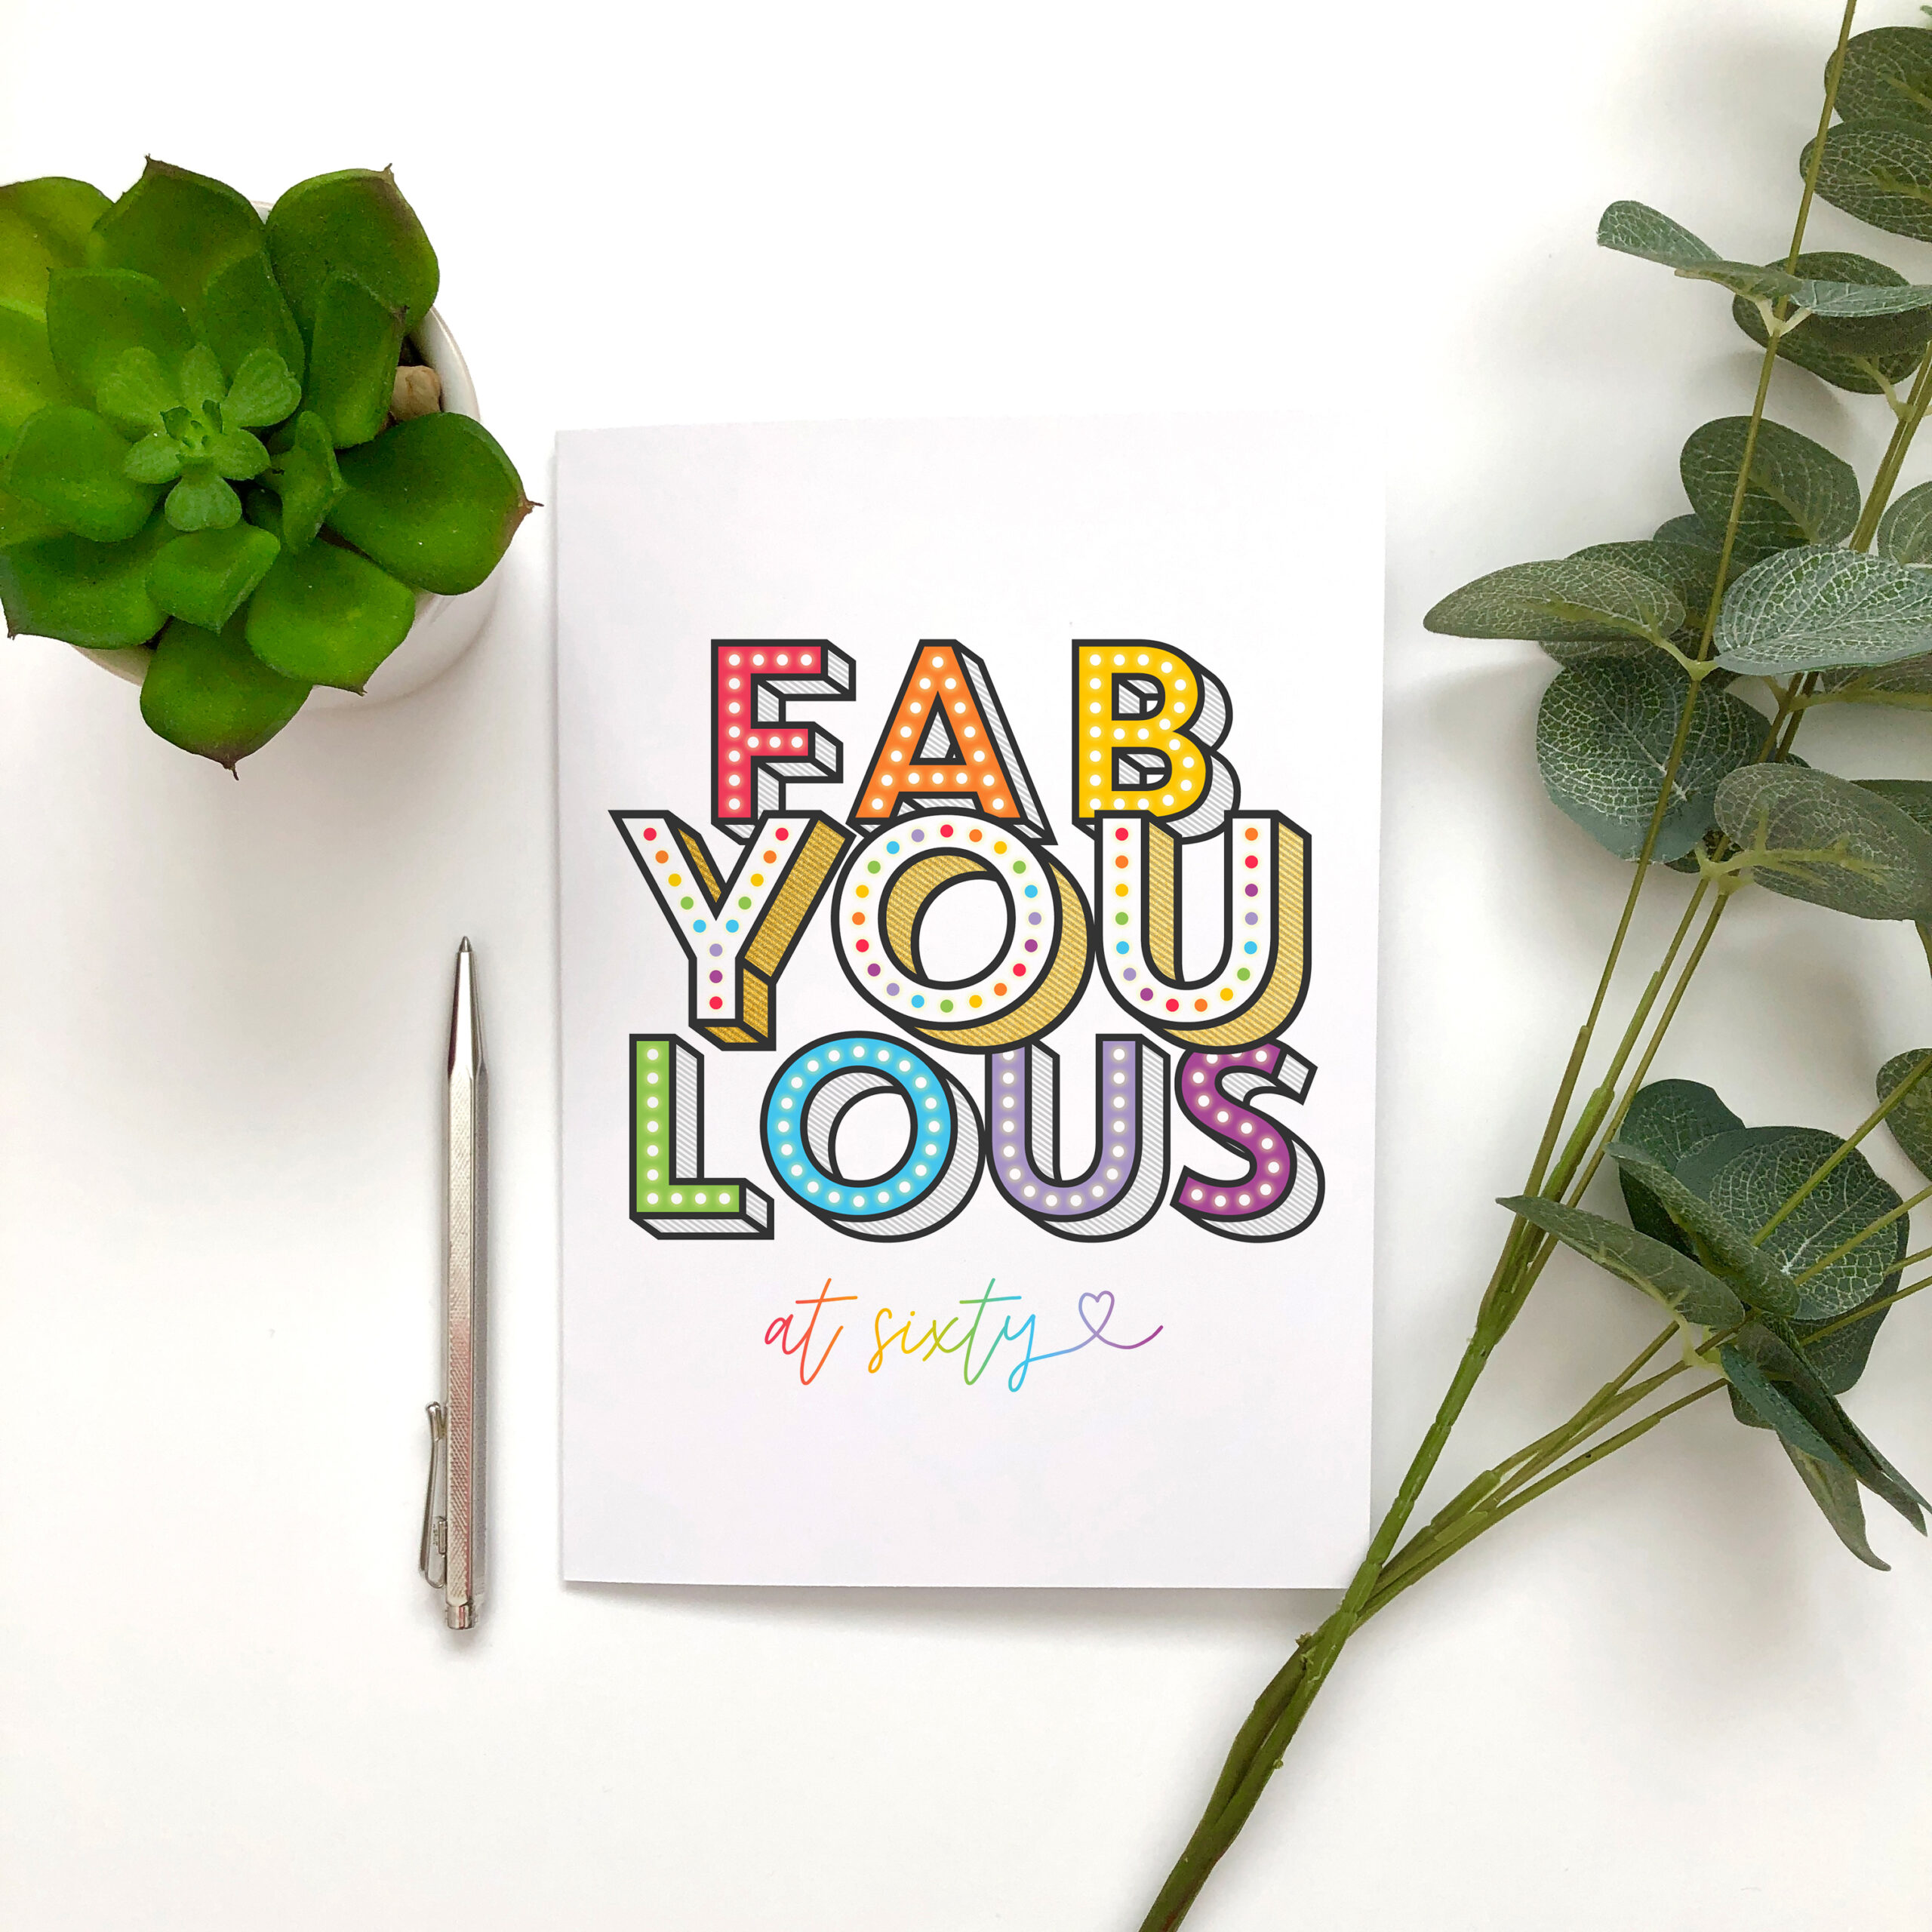 Bright and colourful typography based birthday card design with the positive message Fabulous at Sixty